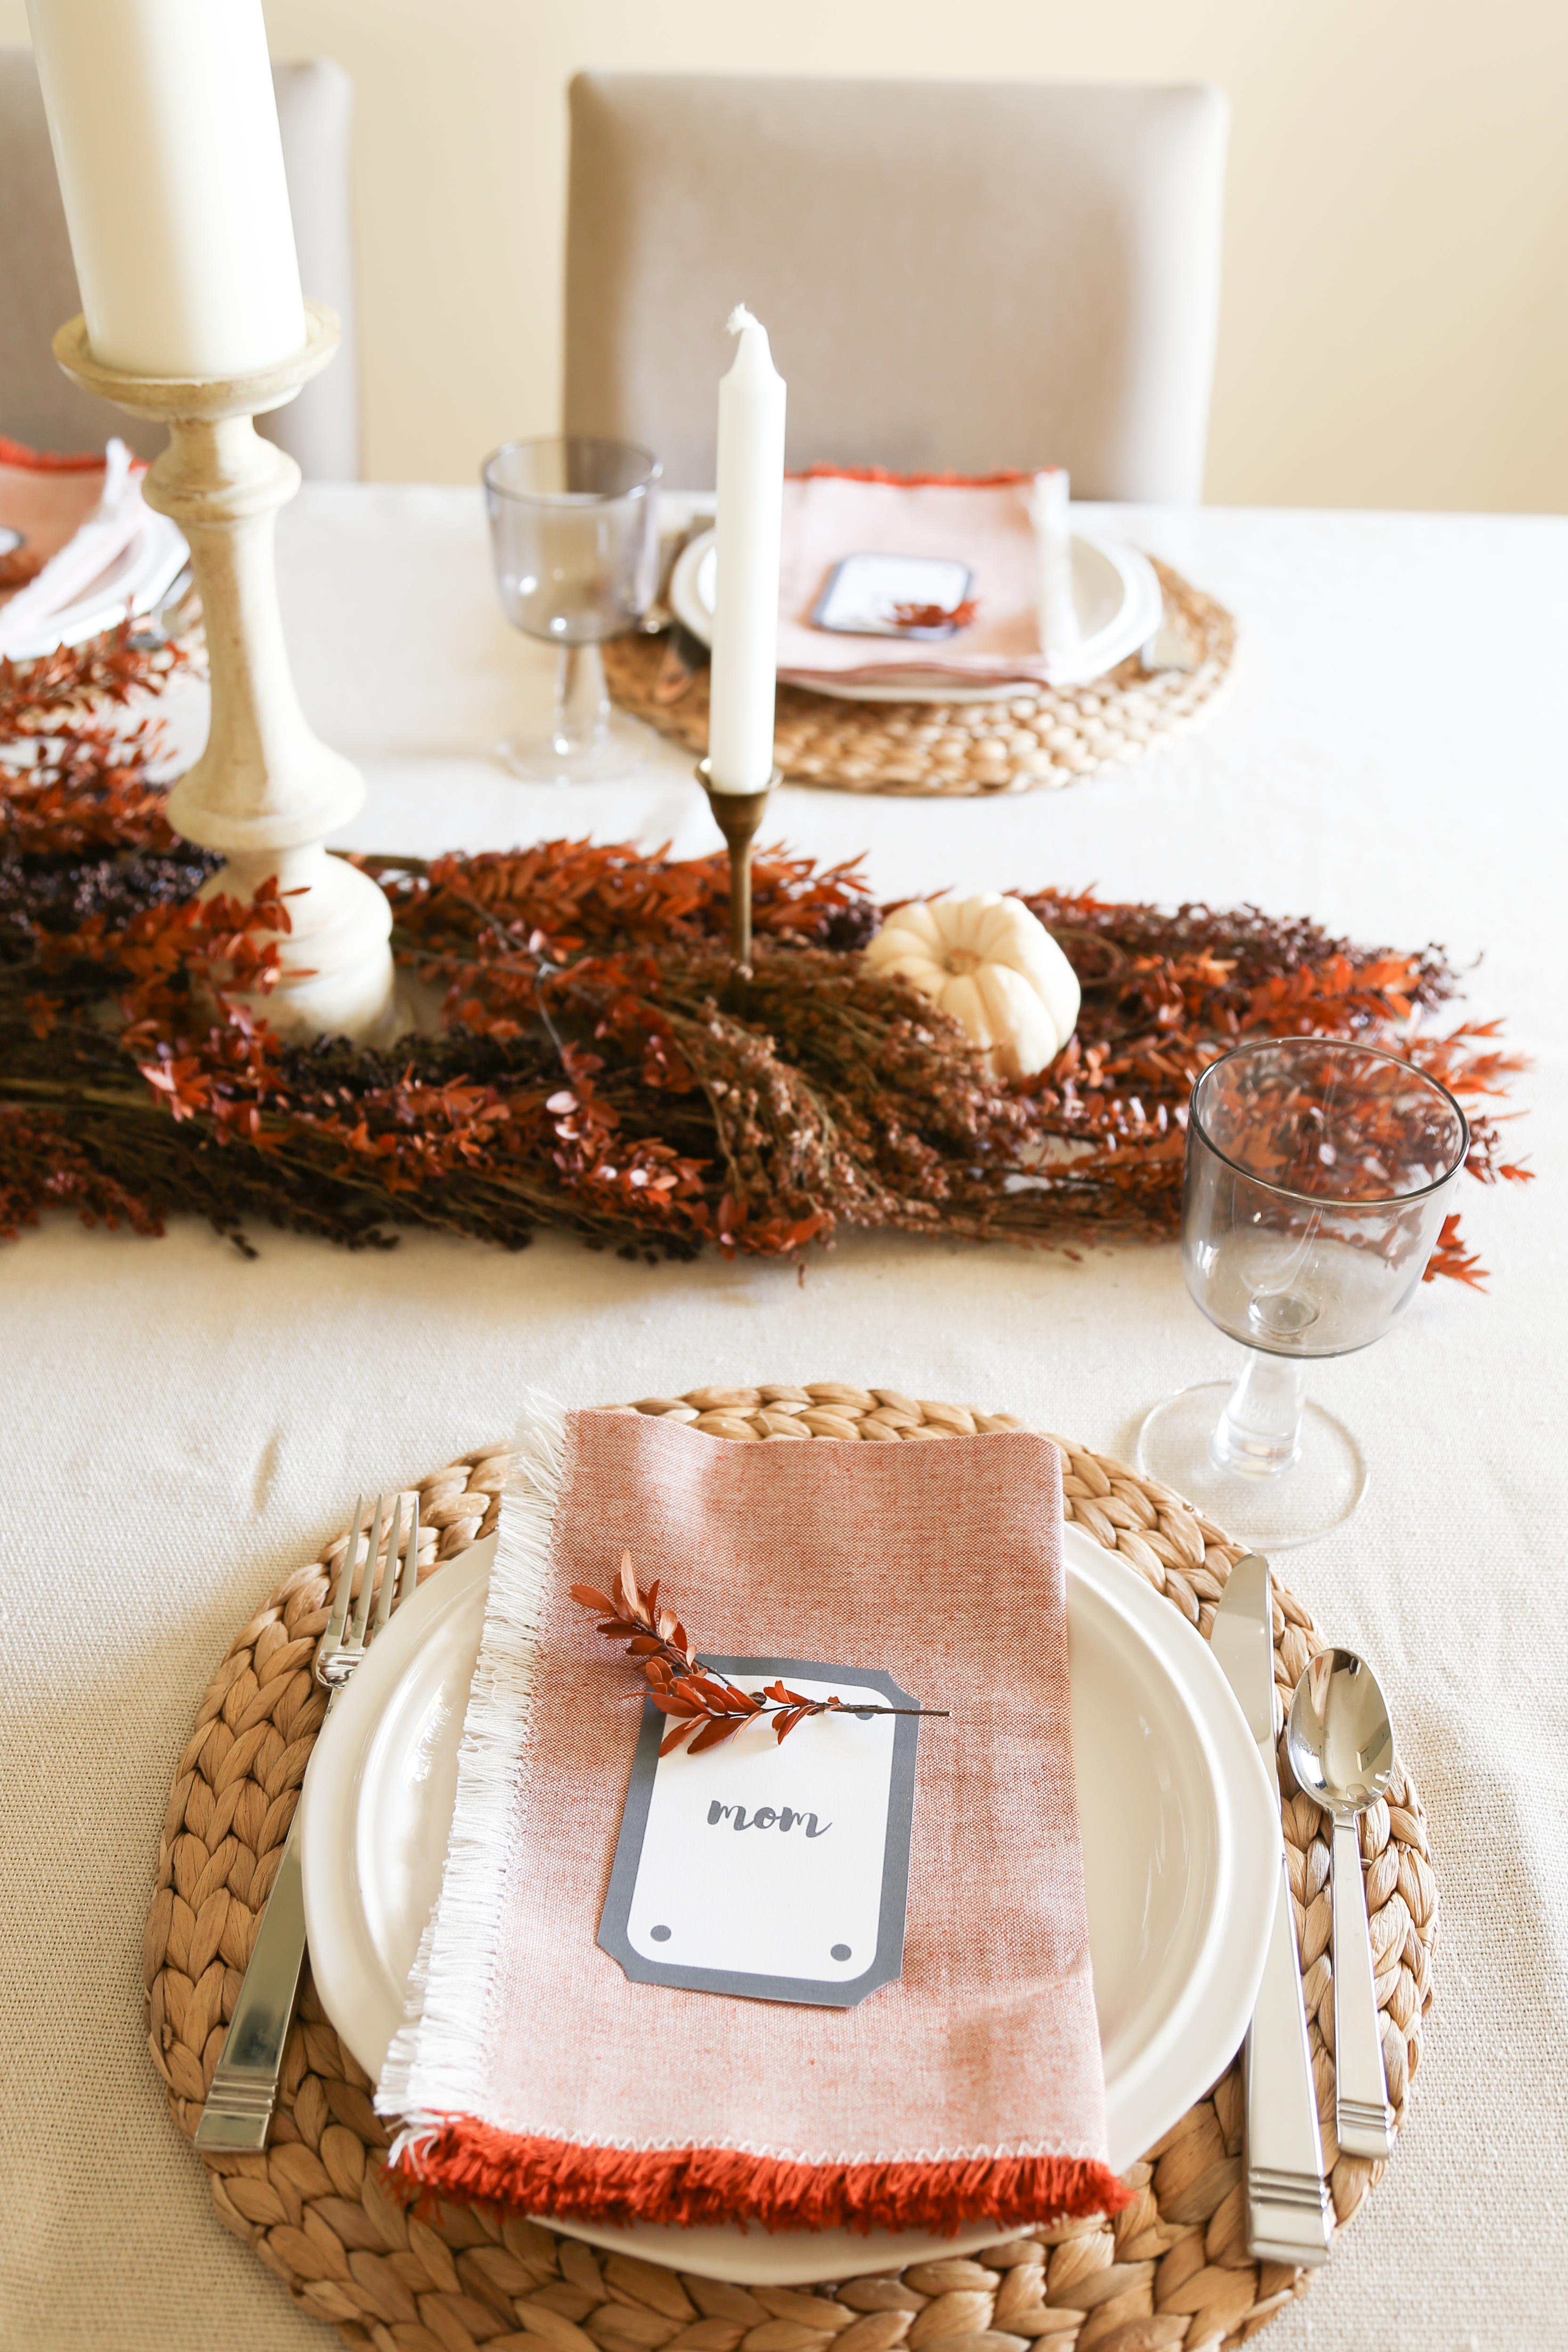 Decorate for thanksgiving using dried stems as a simple and elegant table runner.